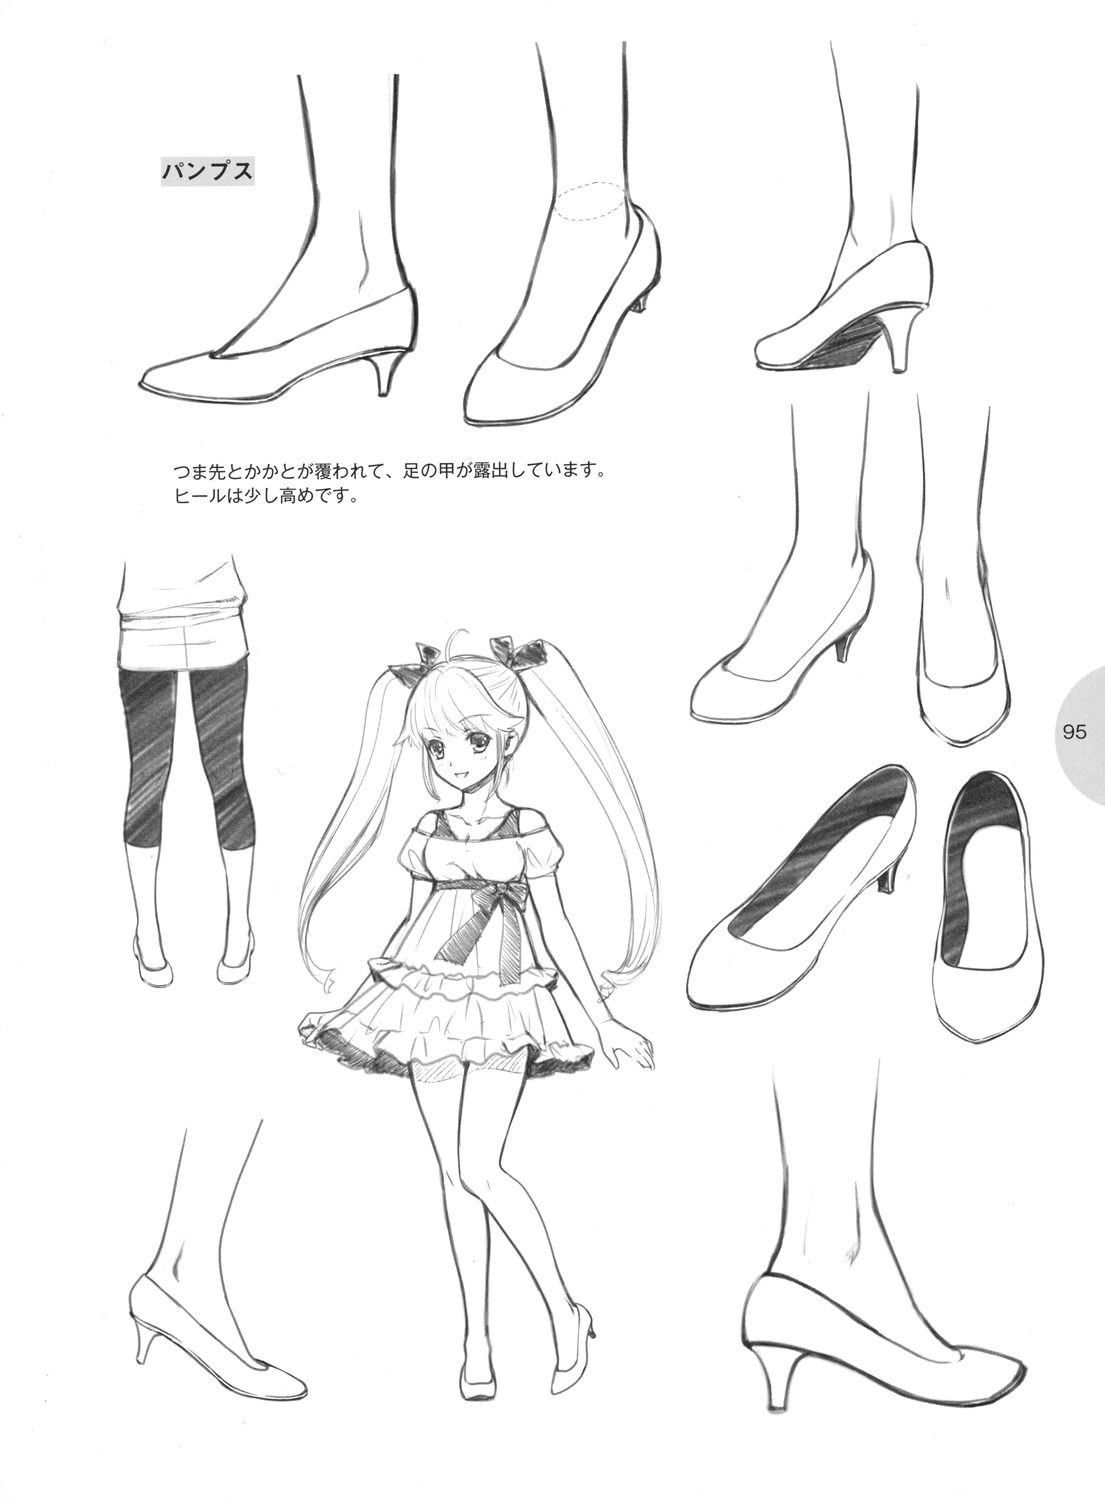 how to draw a heel step by step how to draw a high heel shoe step by step drawing draw how heel step to step a by